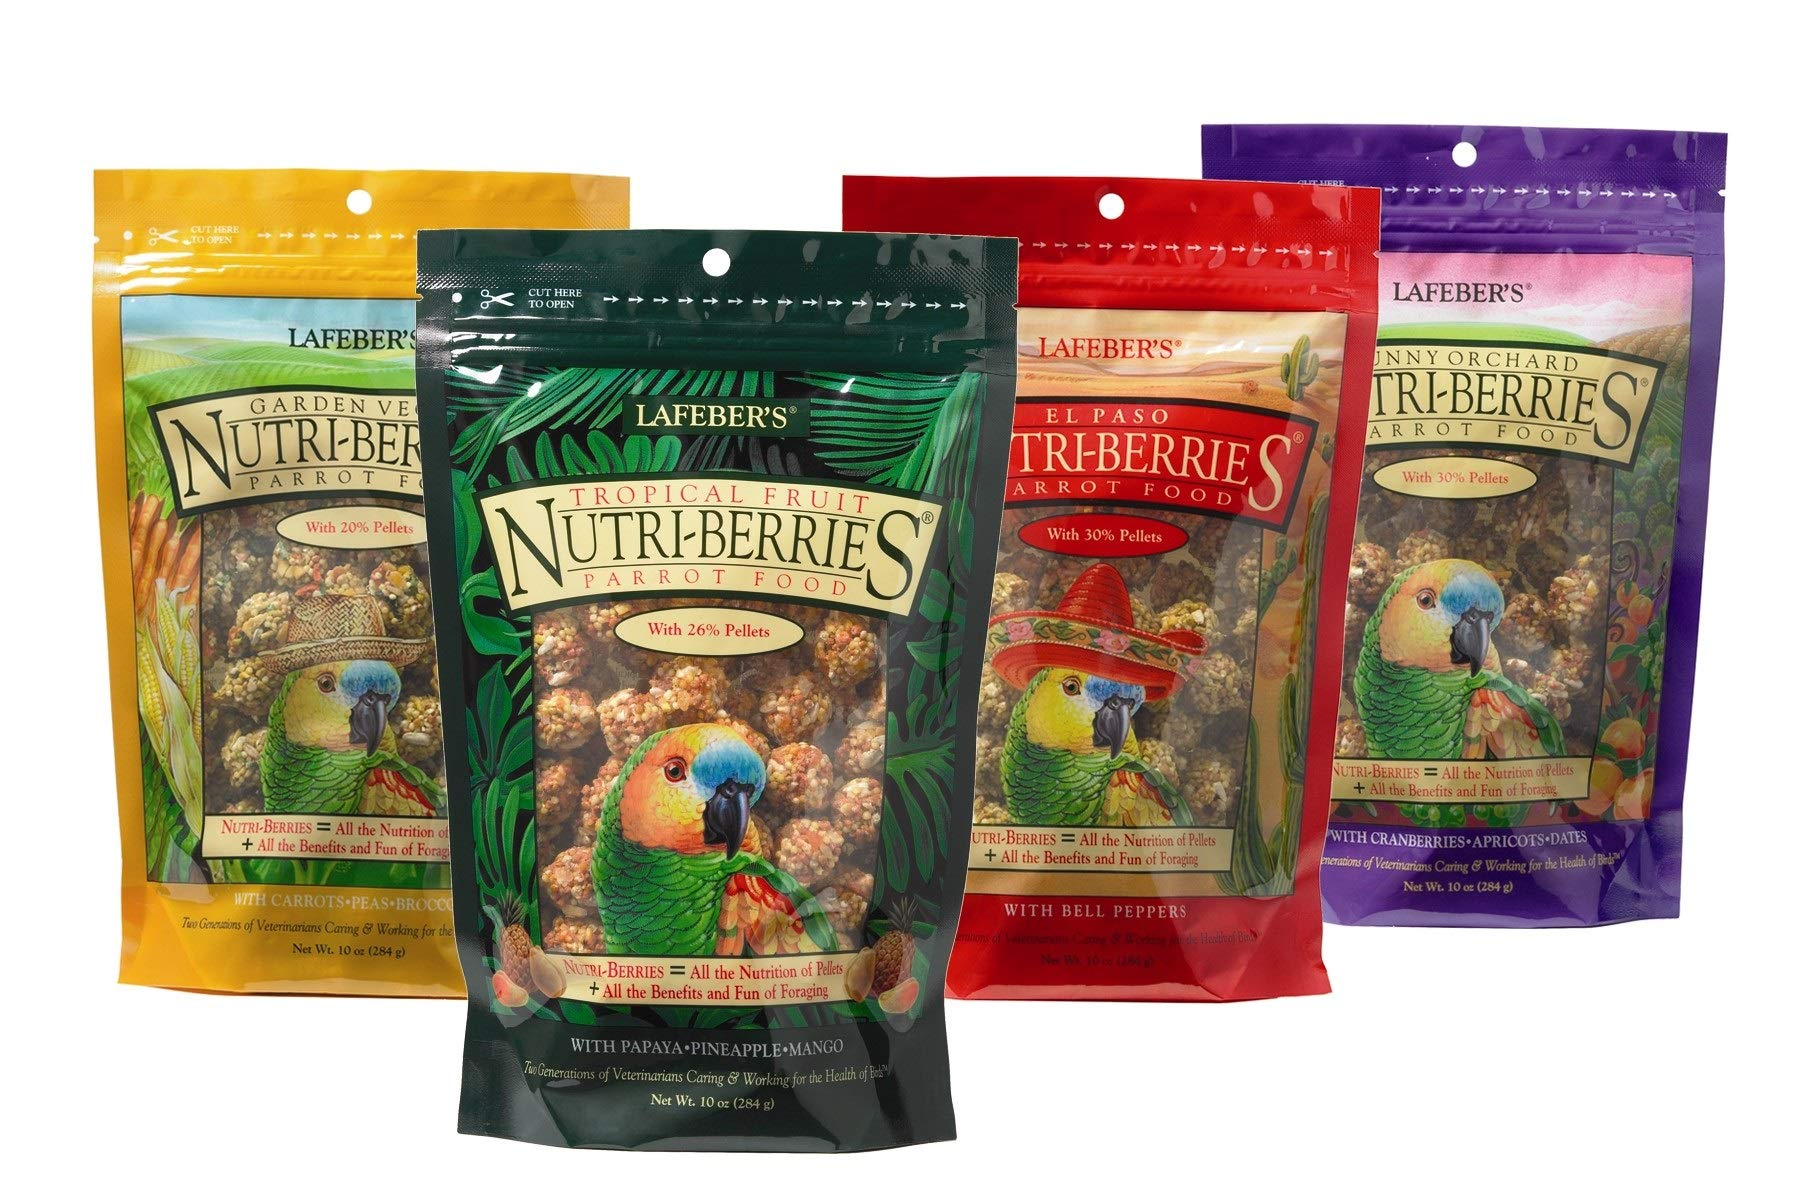 LAFEBER'S Nutri-Berries Pet Bird Food Bundle with Tropical Fruit, El Paso, Sunny Orchard, and Garden Veggie for Parrots, 10 oz Each (4 Items) by LAFEBER'S